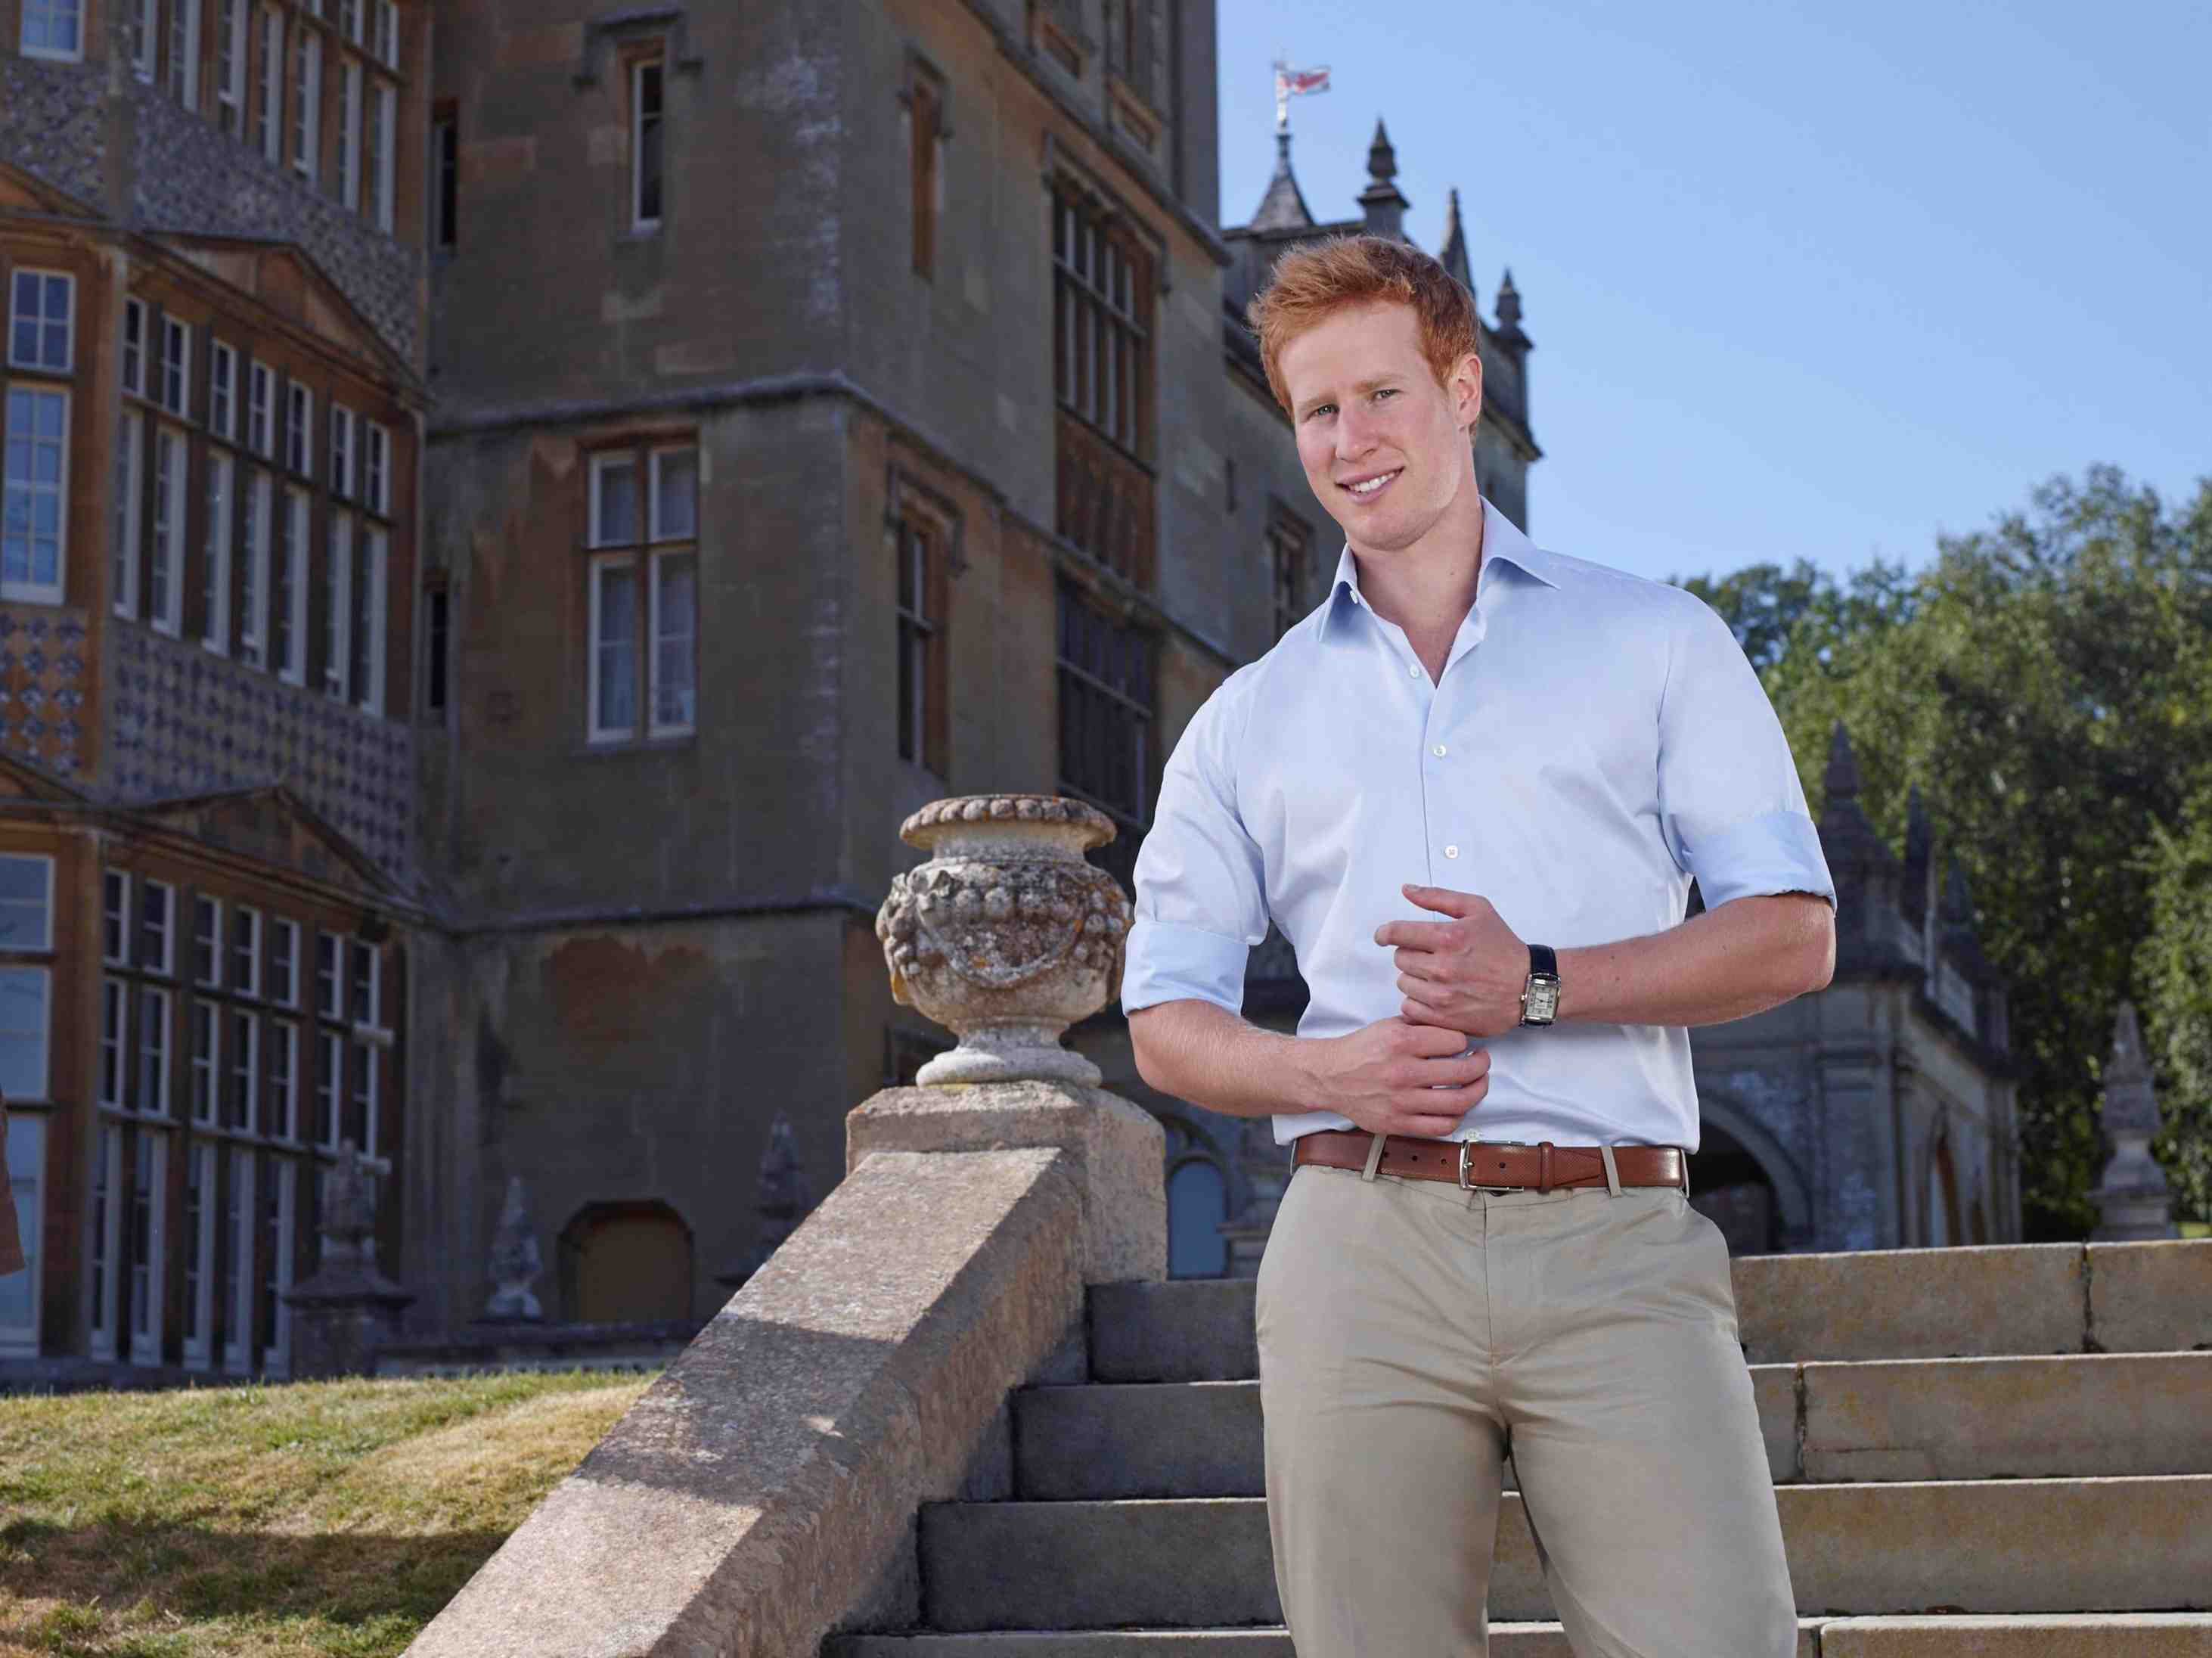 Pictures Of Prince Henry Of Wales